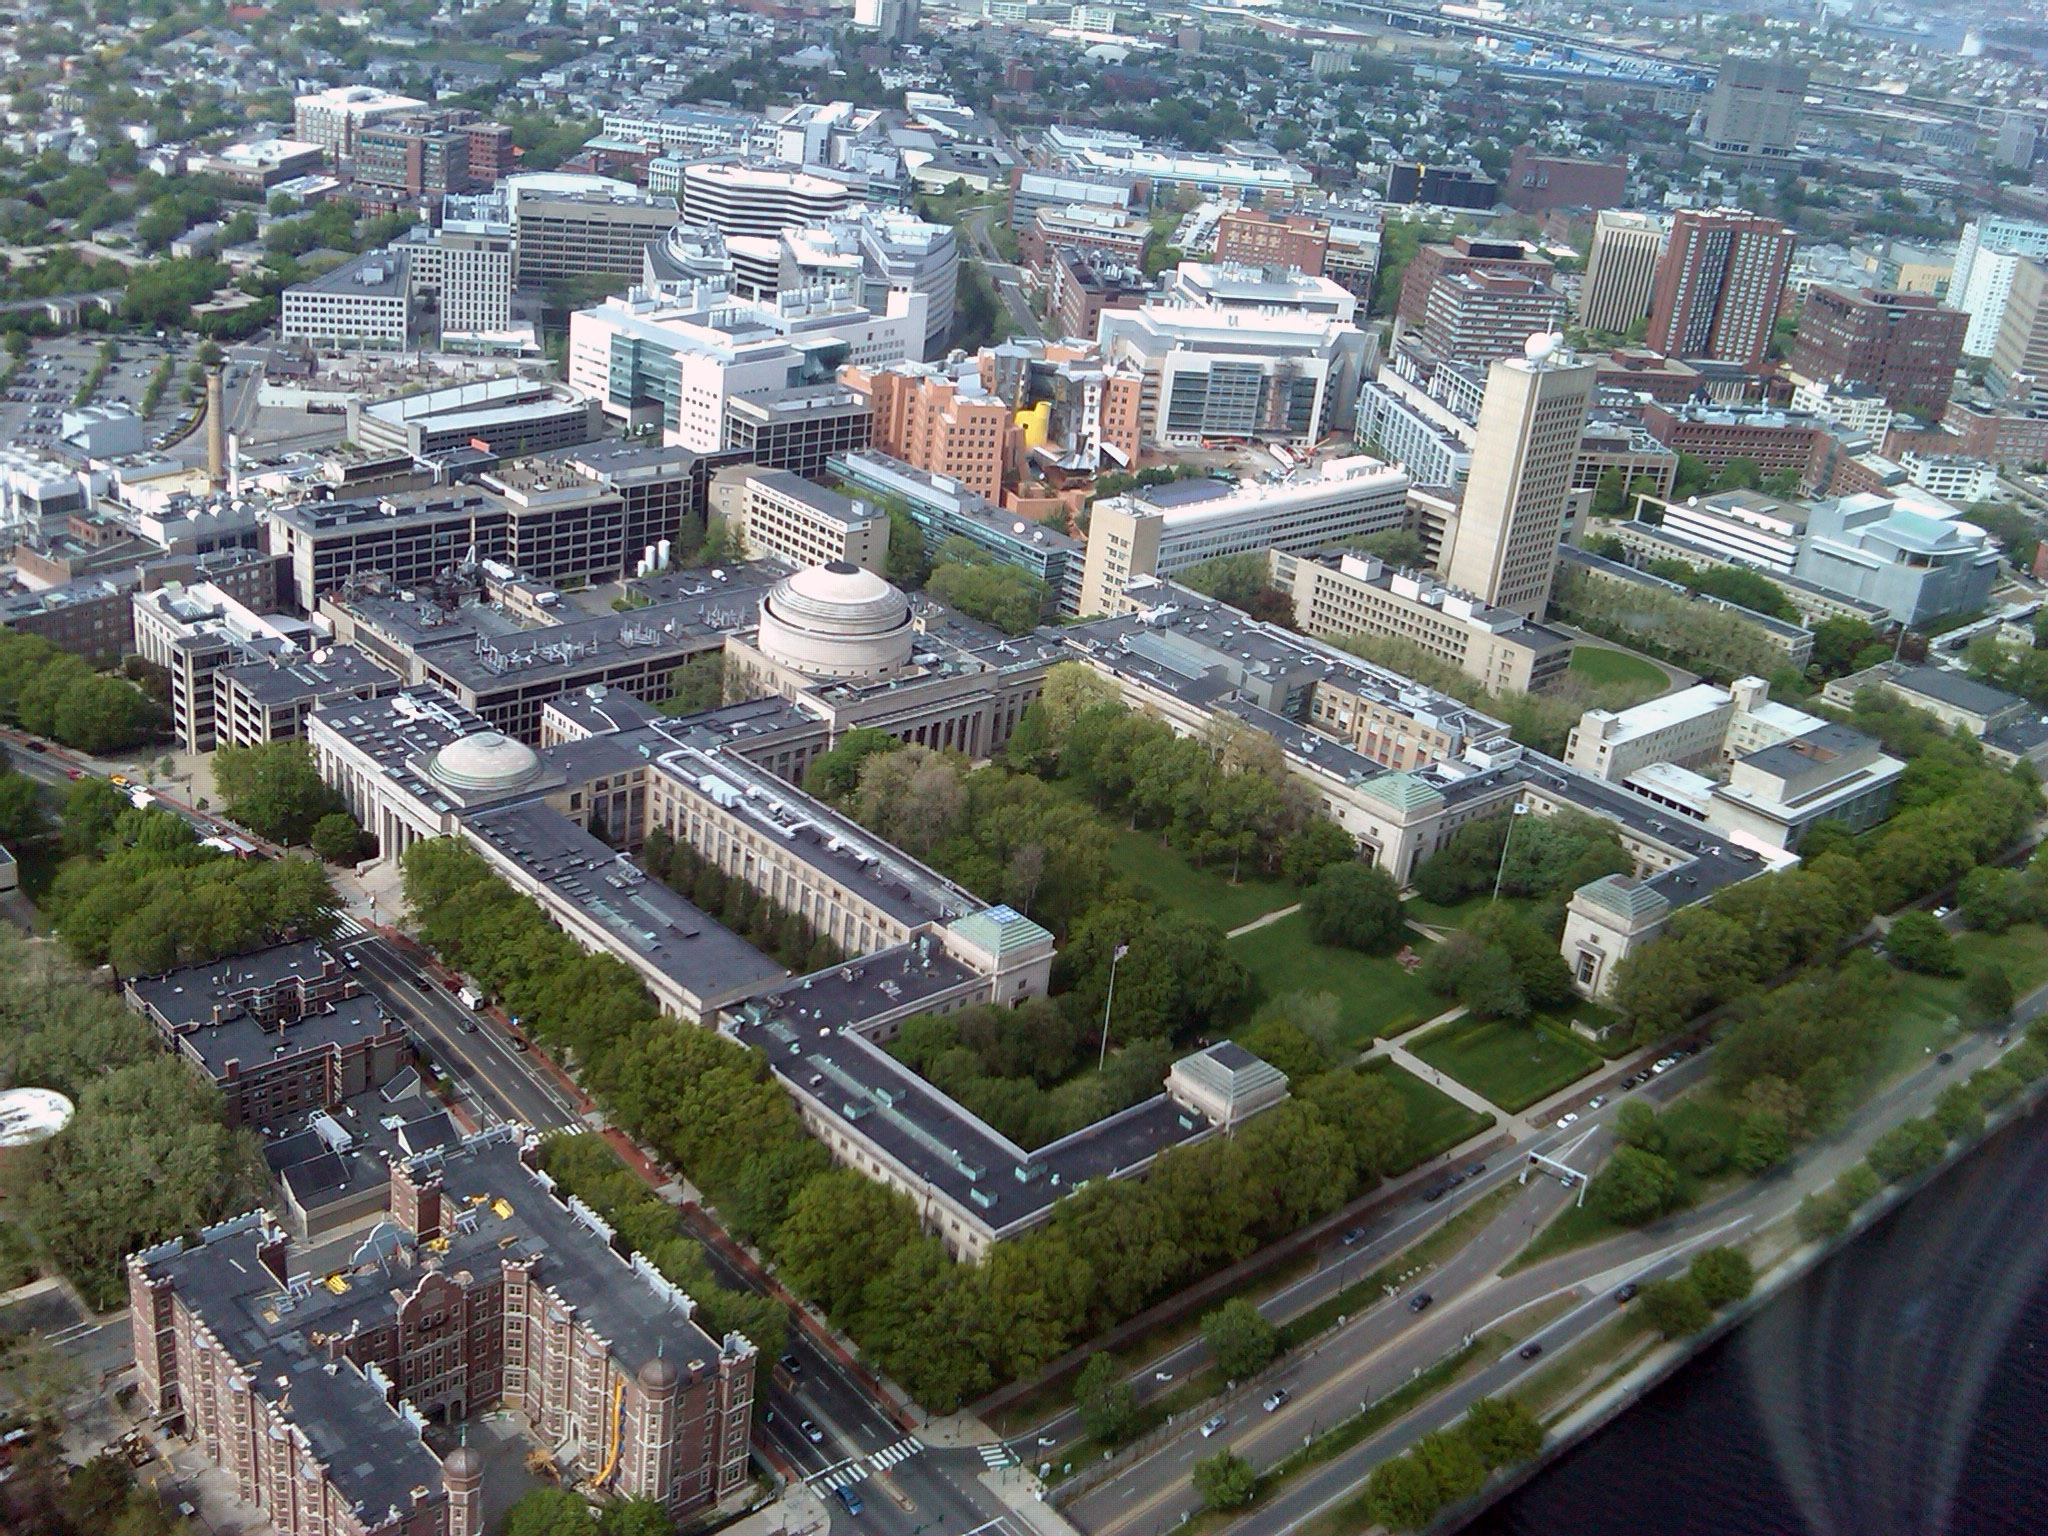 Aerial View of MIT's Current Campus in Cambridge, courtesy of Wikipedia